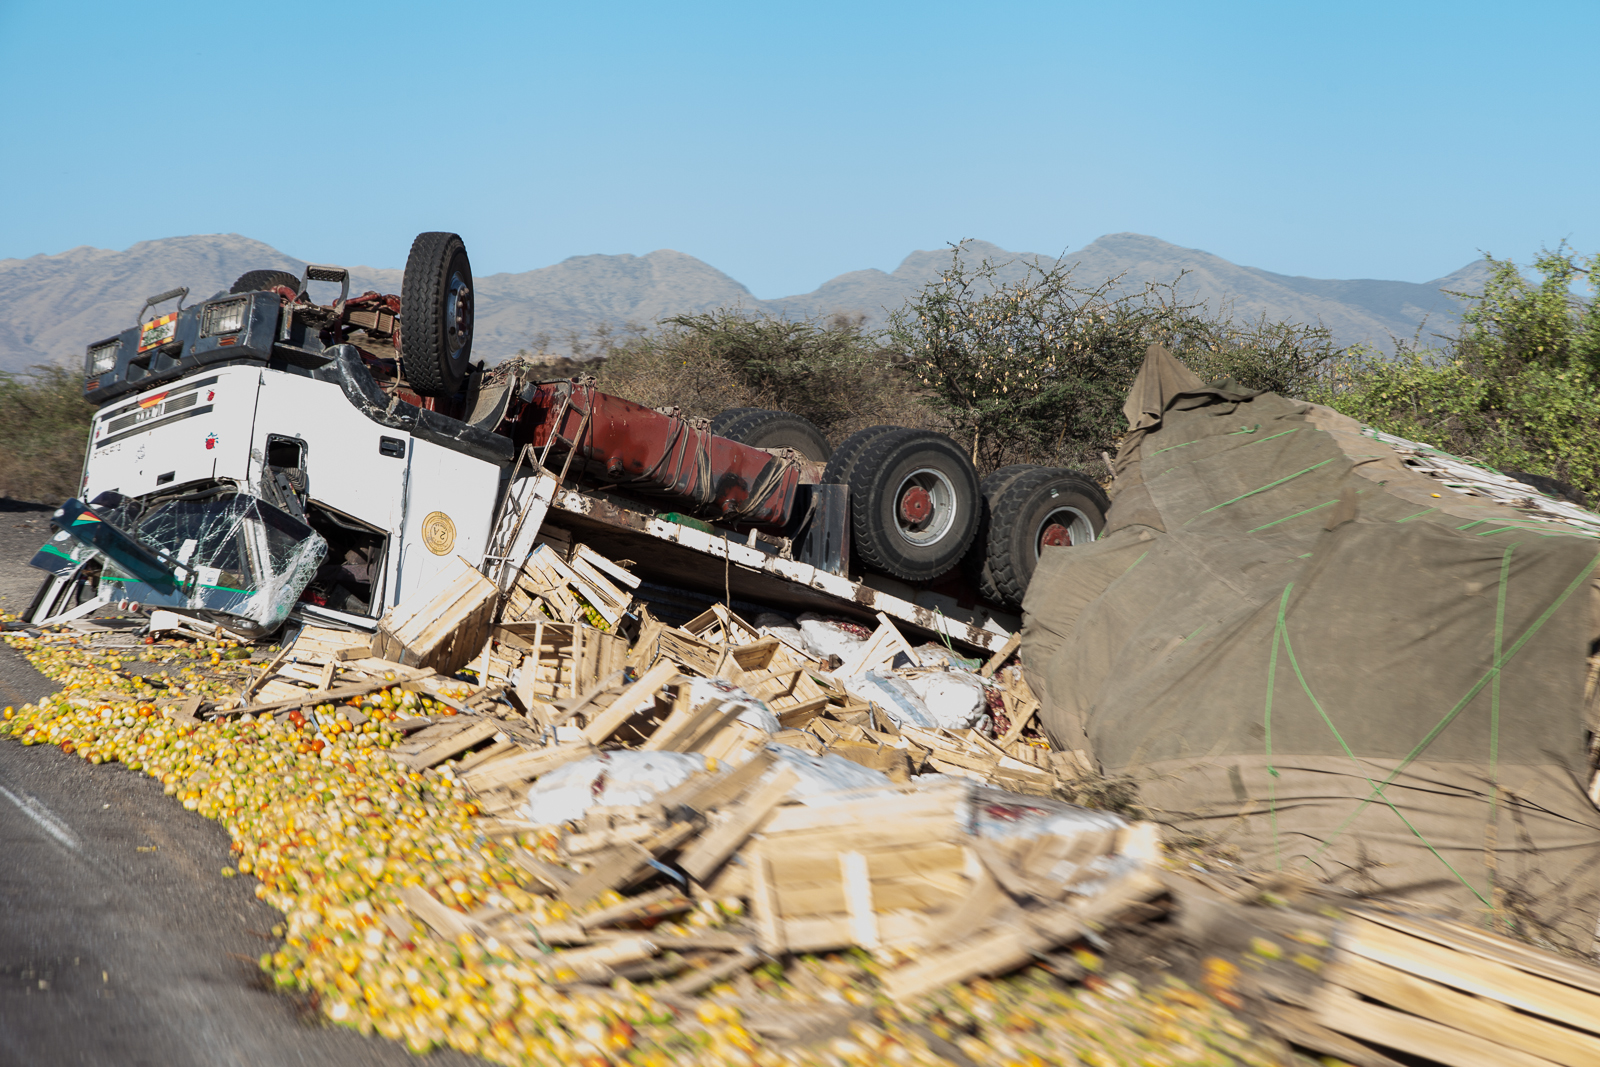 On the first day of driving we saw in the region of 20 overturned trucks. [Click to enlarge]